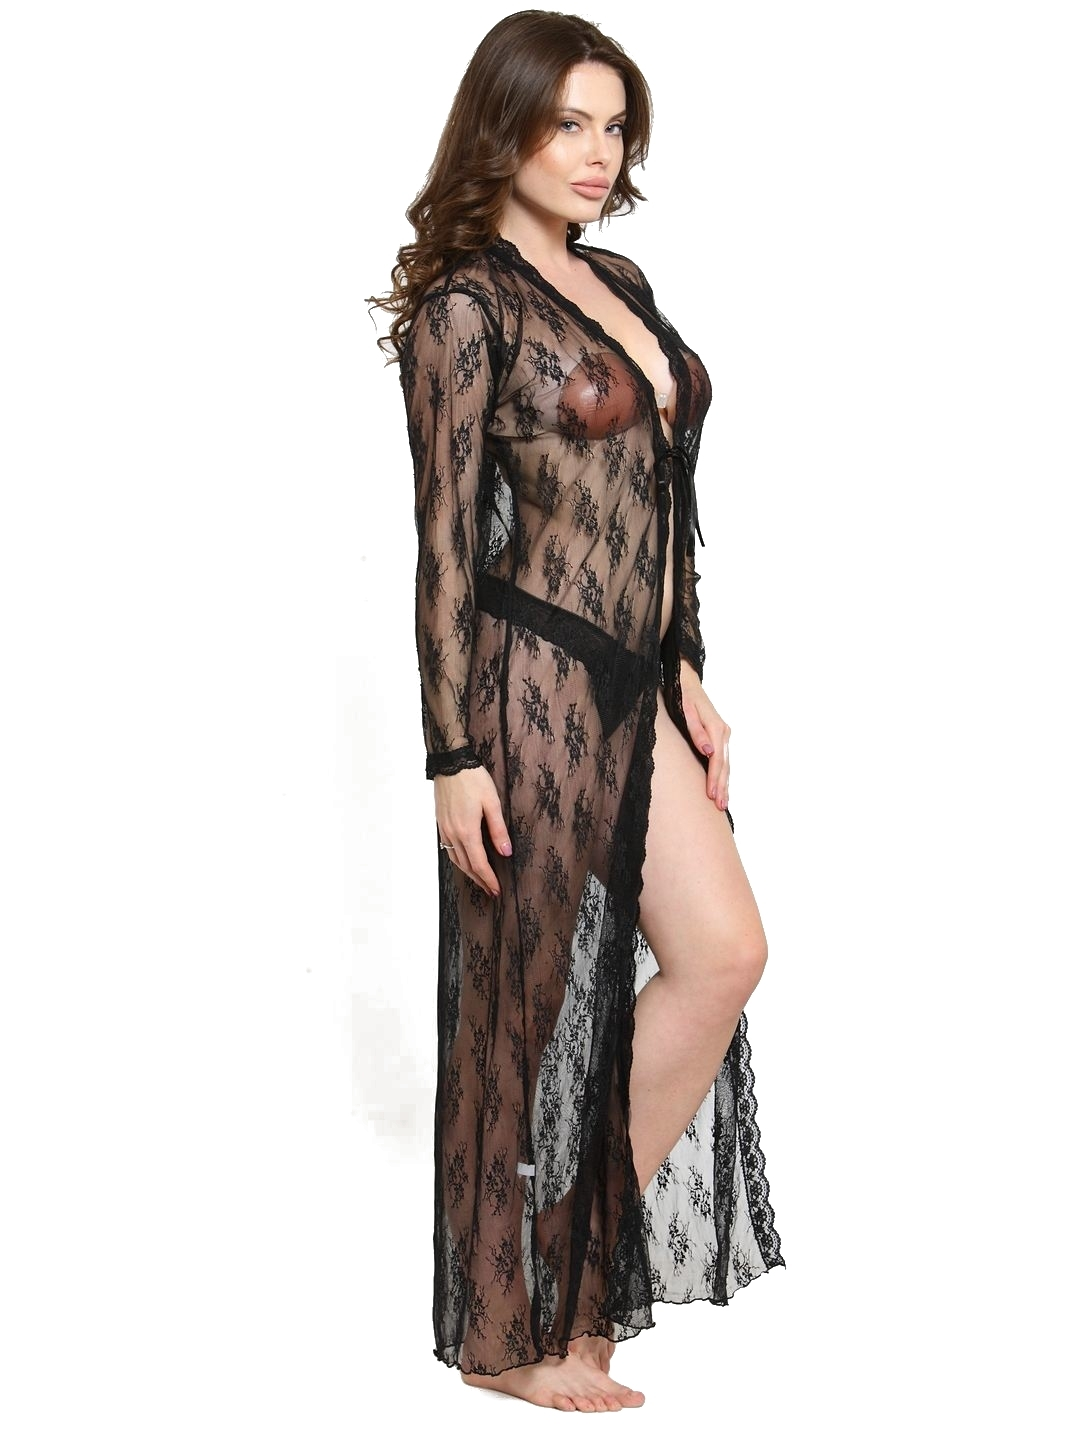 Polyester Sheer Front Slit Bridal Nightgown Nightwear with G-String